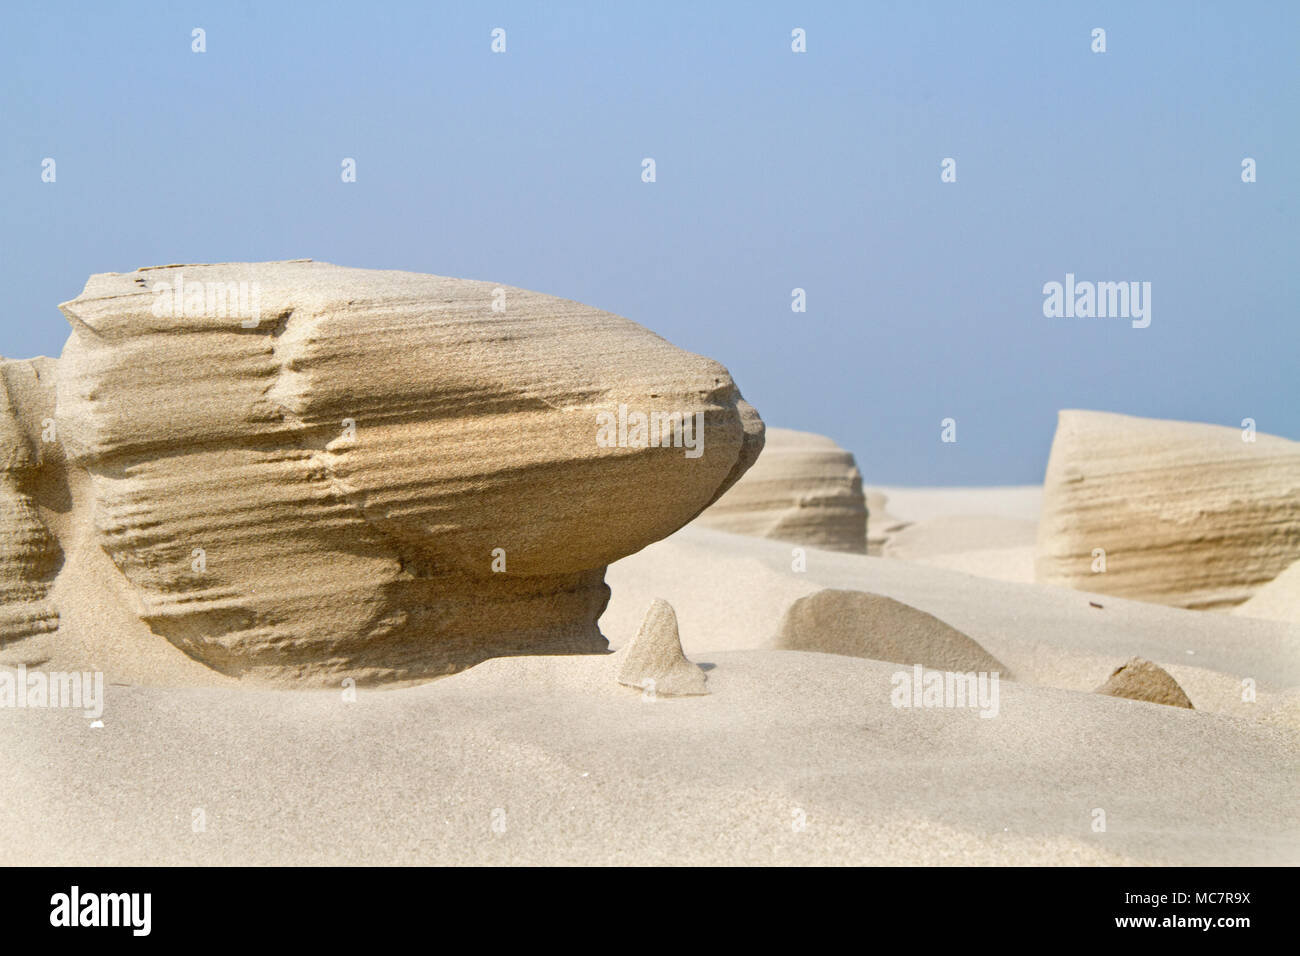 Wind erosion forms strange sculptures in the sand of a beach - Stock Image